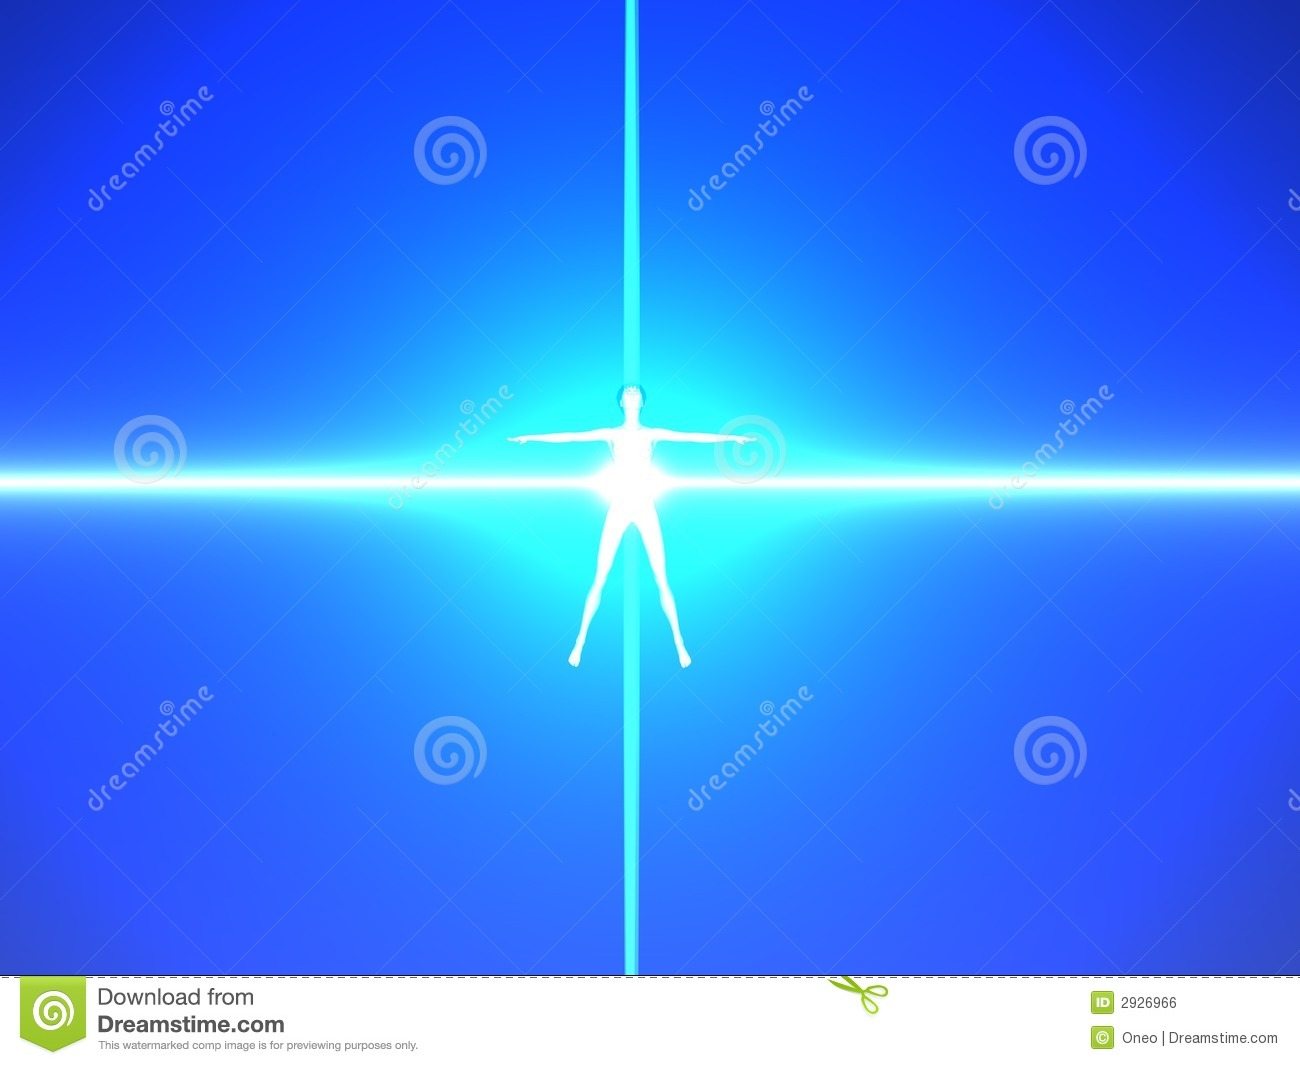 Human body in blue power rays